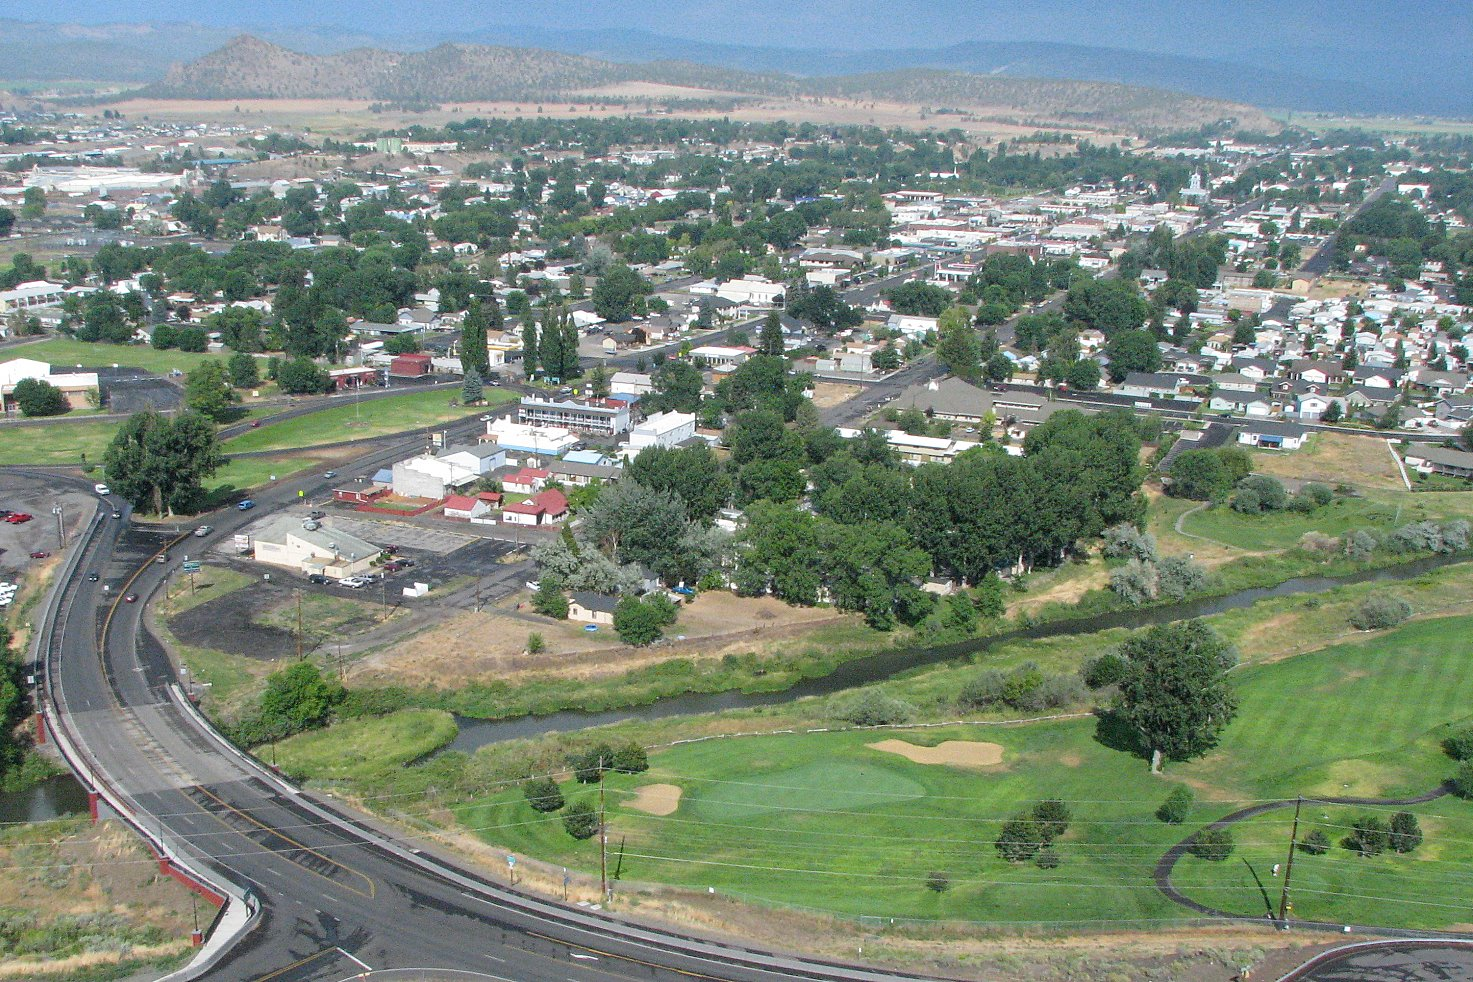 prineville dating List of residents in prineville, or below is a list of people by last name in alphabetical order who show residency in prineville, or each name is accompanied by the zip code that person is associated with, along with their phone number if it is not private.